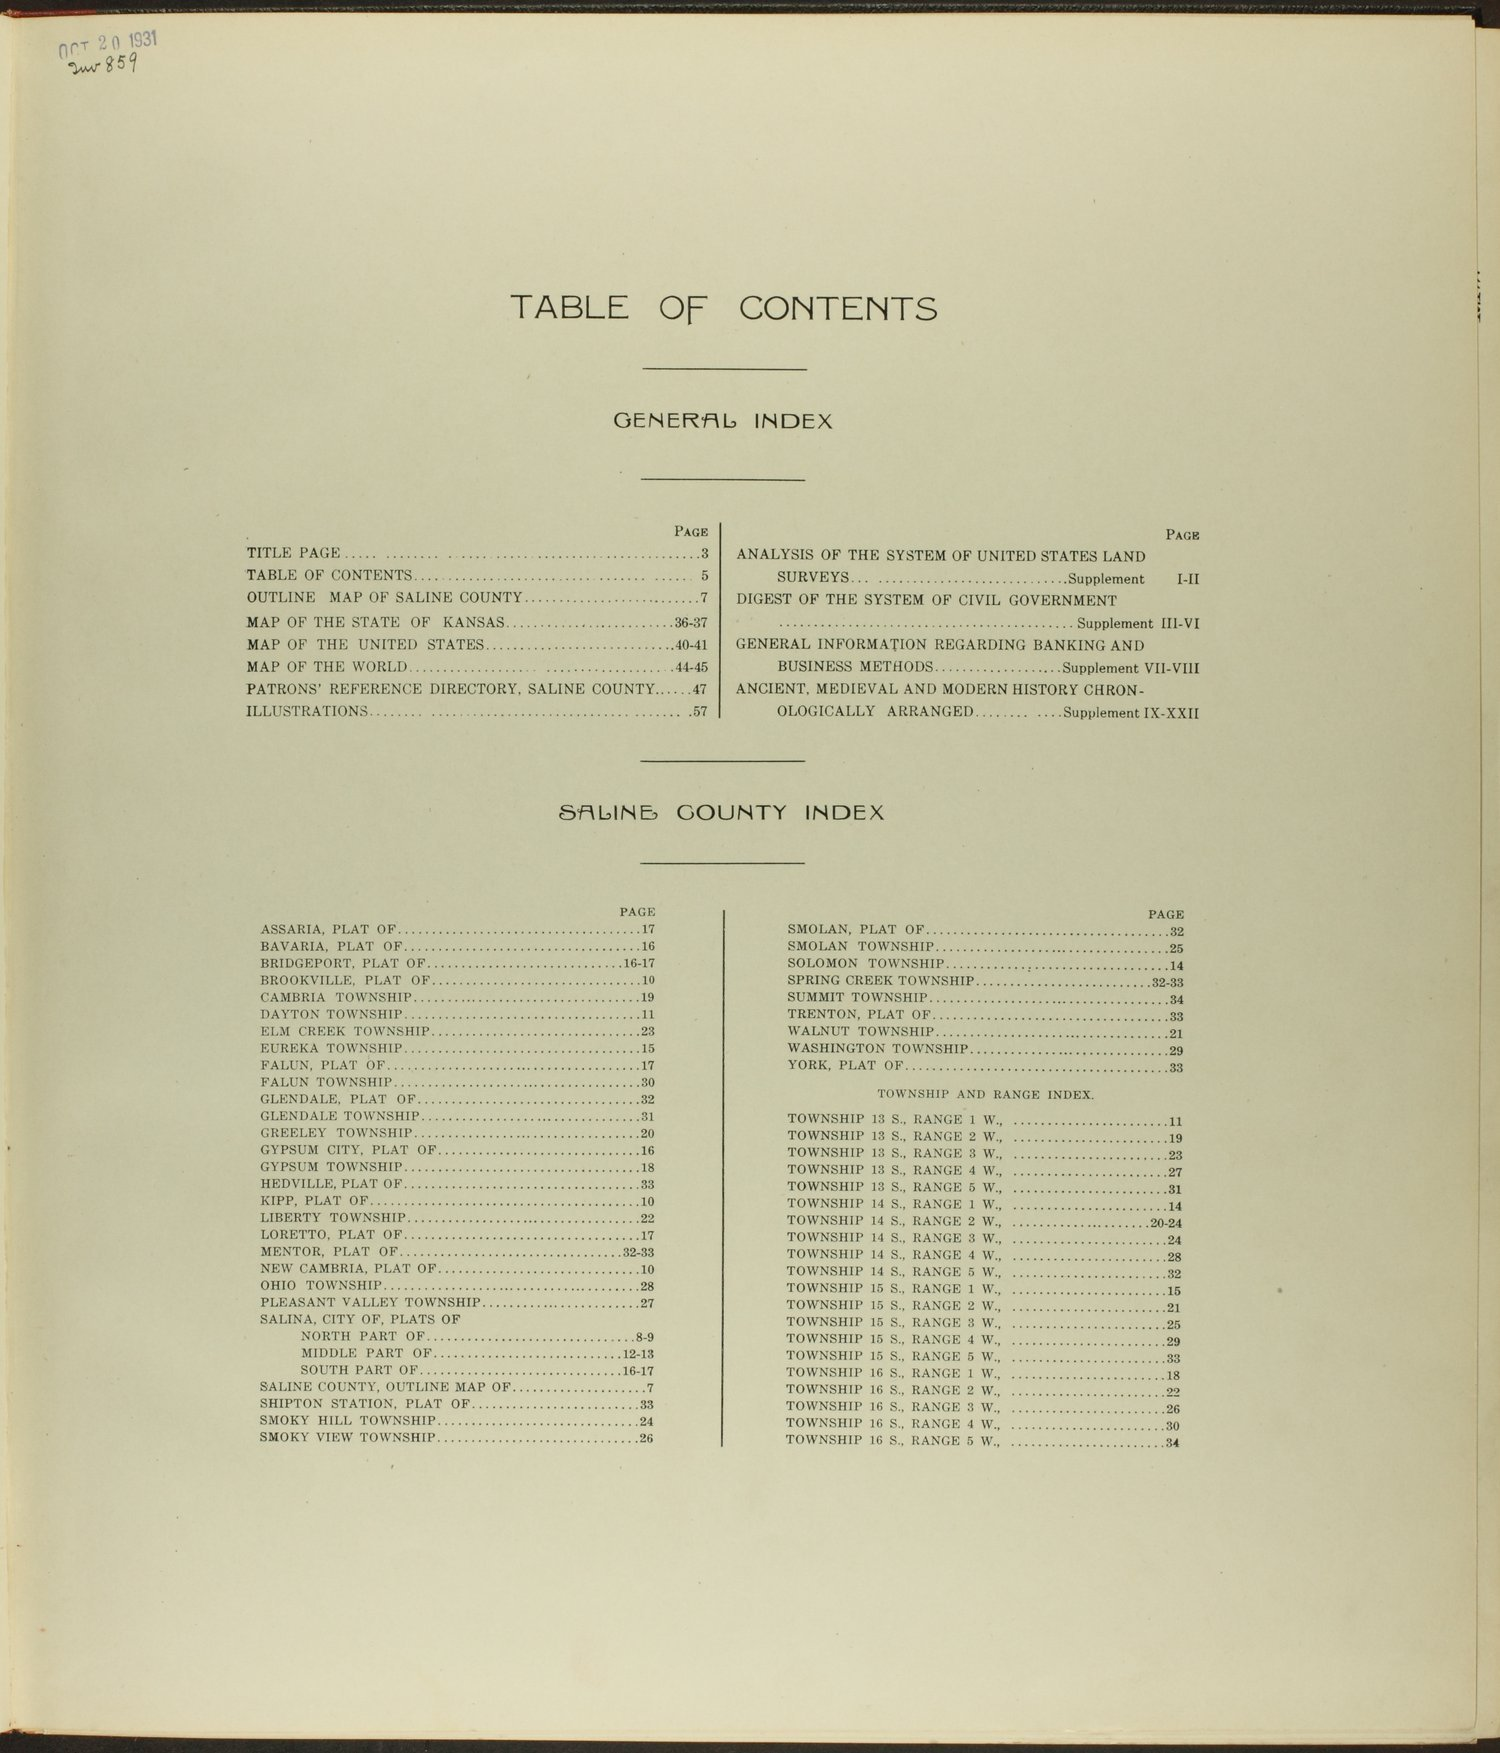 Standard atlas of Saline County, Kansas - Table of Contents